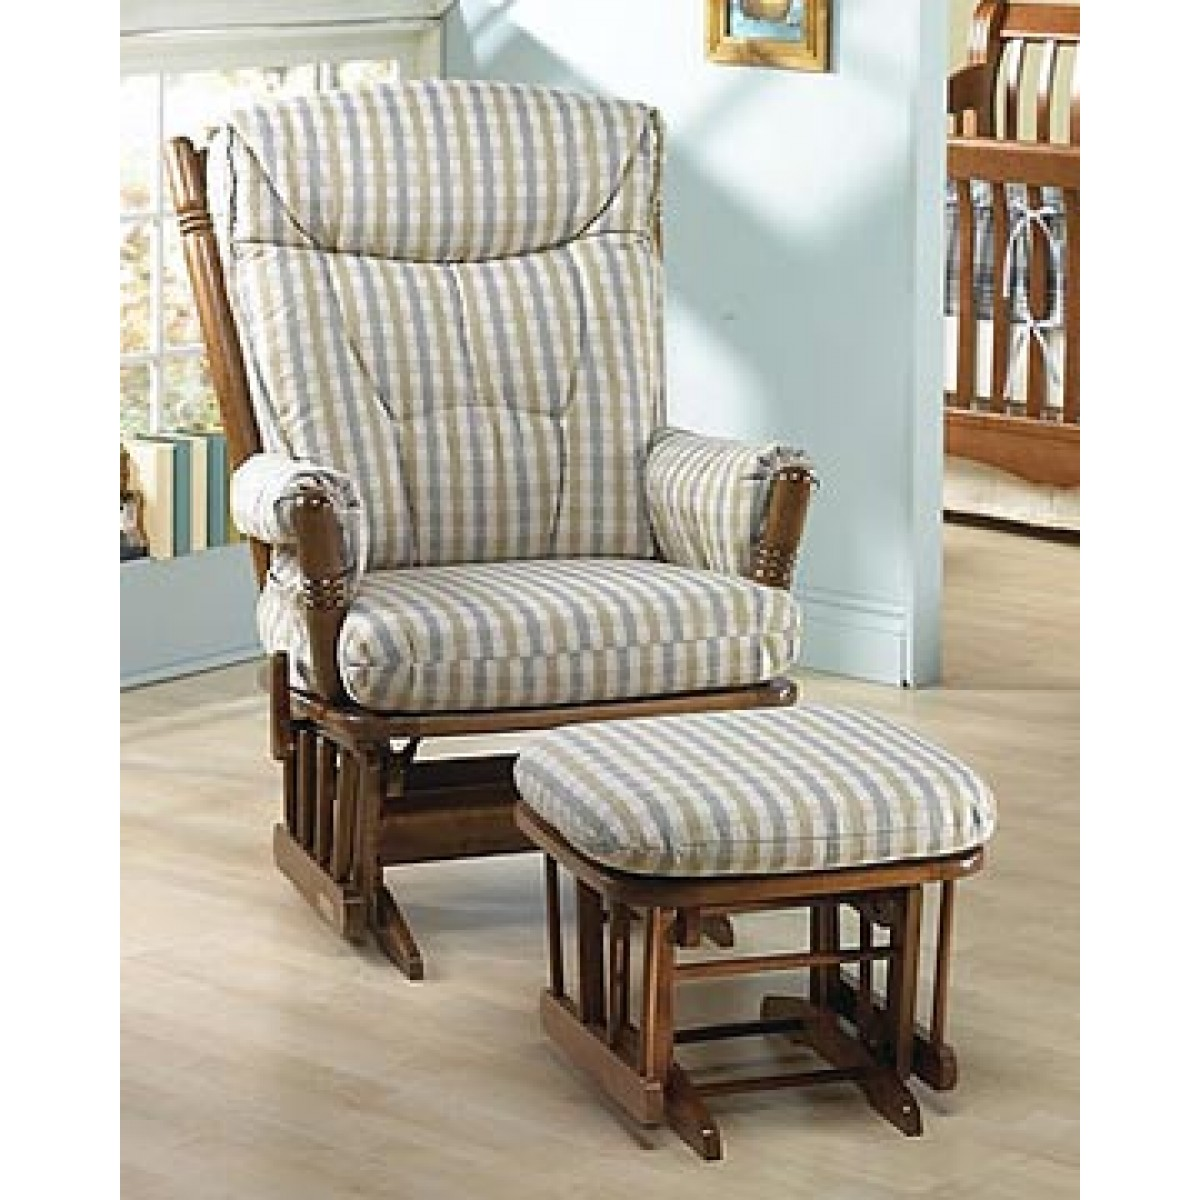 glider 15 style no 914 - Gliding Rocking Chair